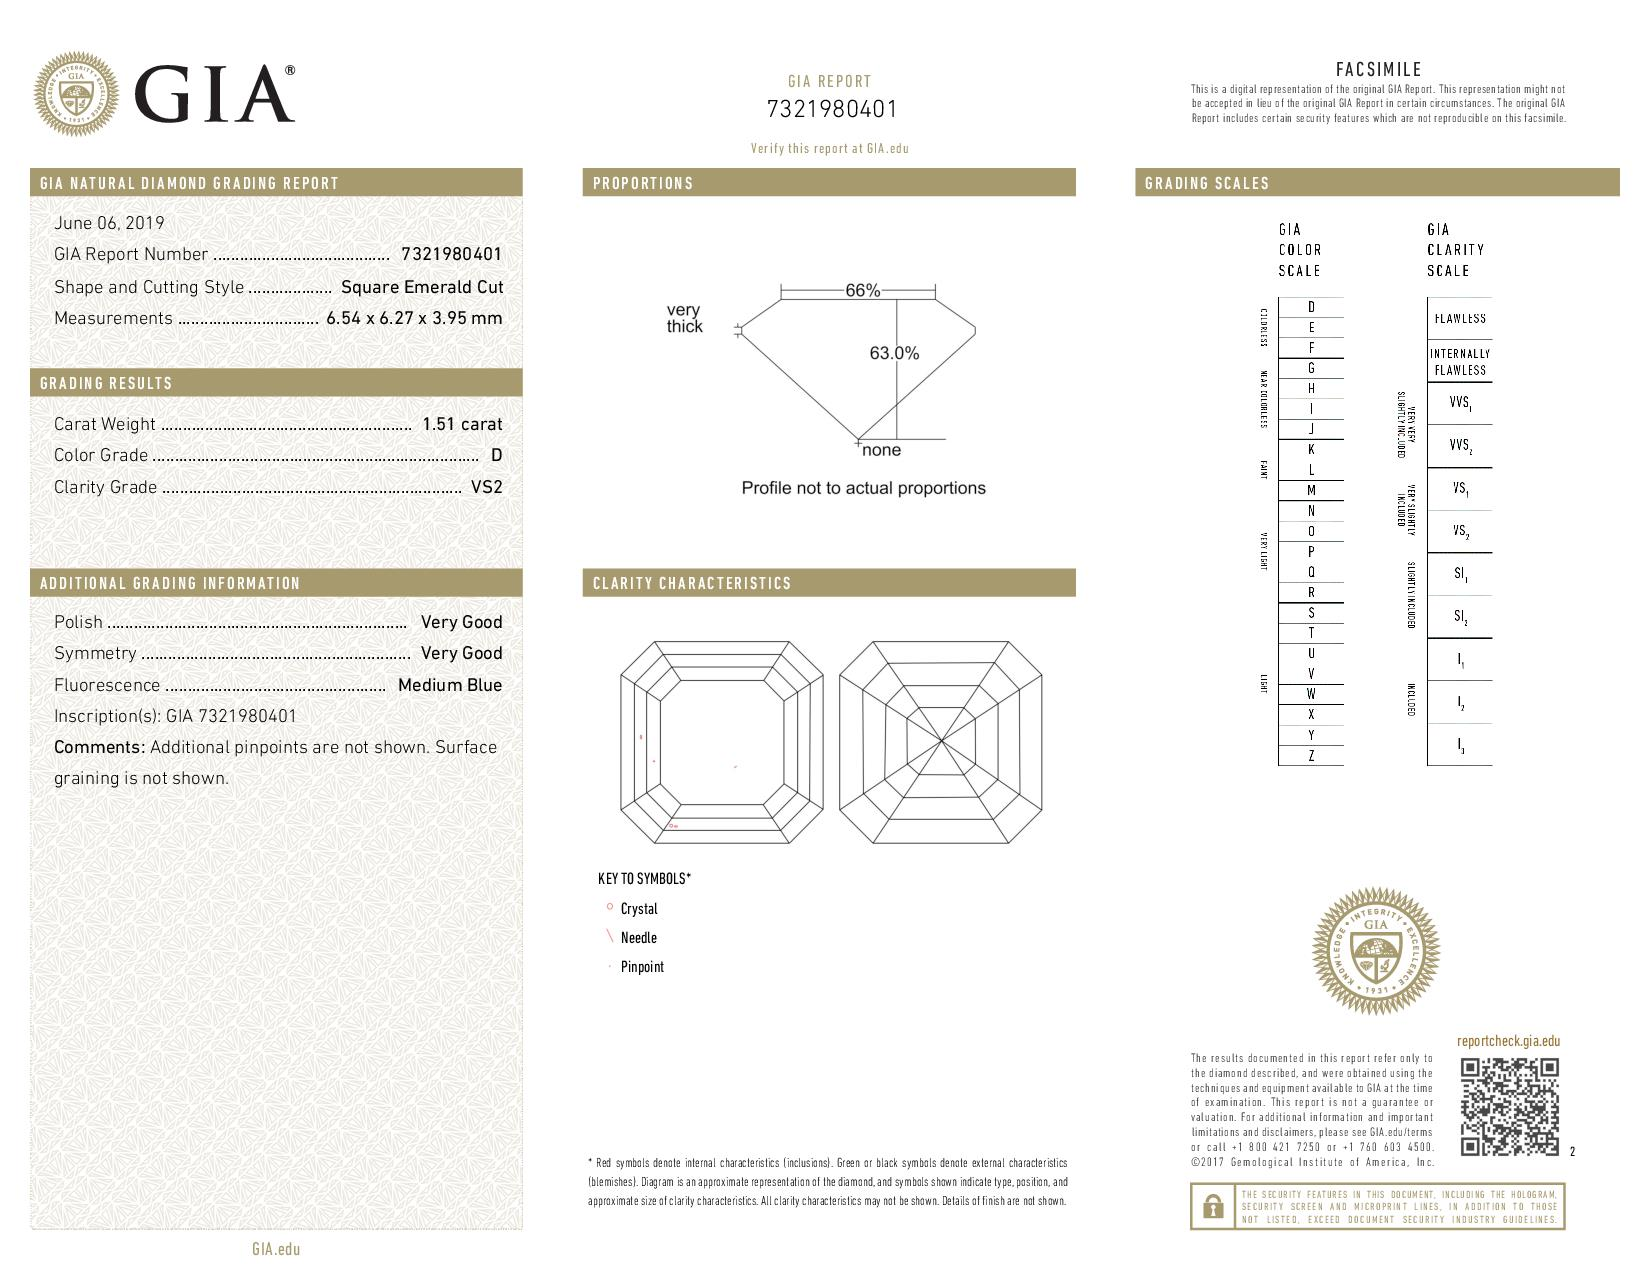 This is a 1.51 carat asscher shape, D color, VS2 clarity natural diamond accompanied by a GIA grading report.